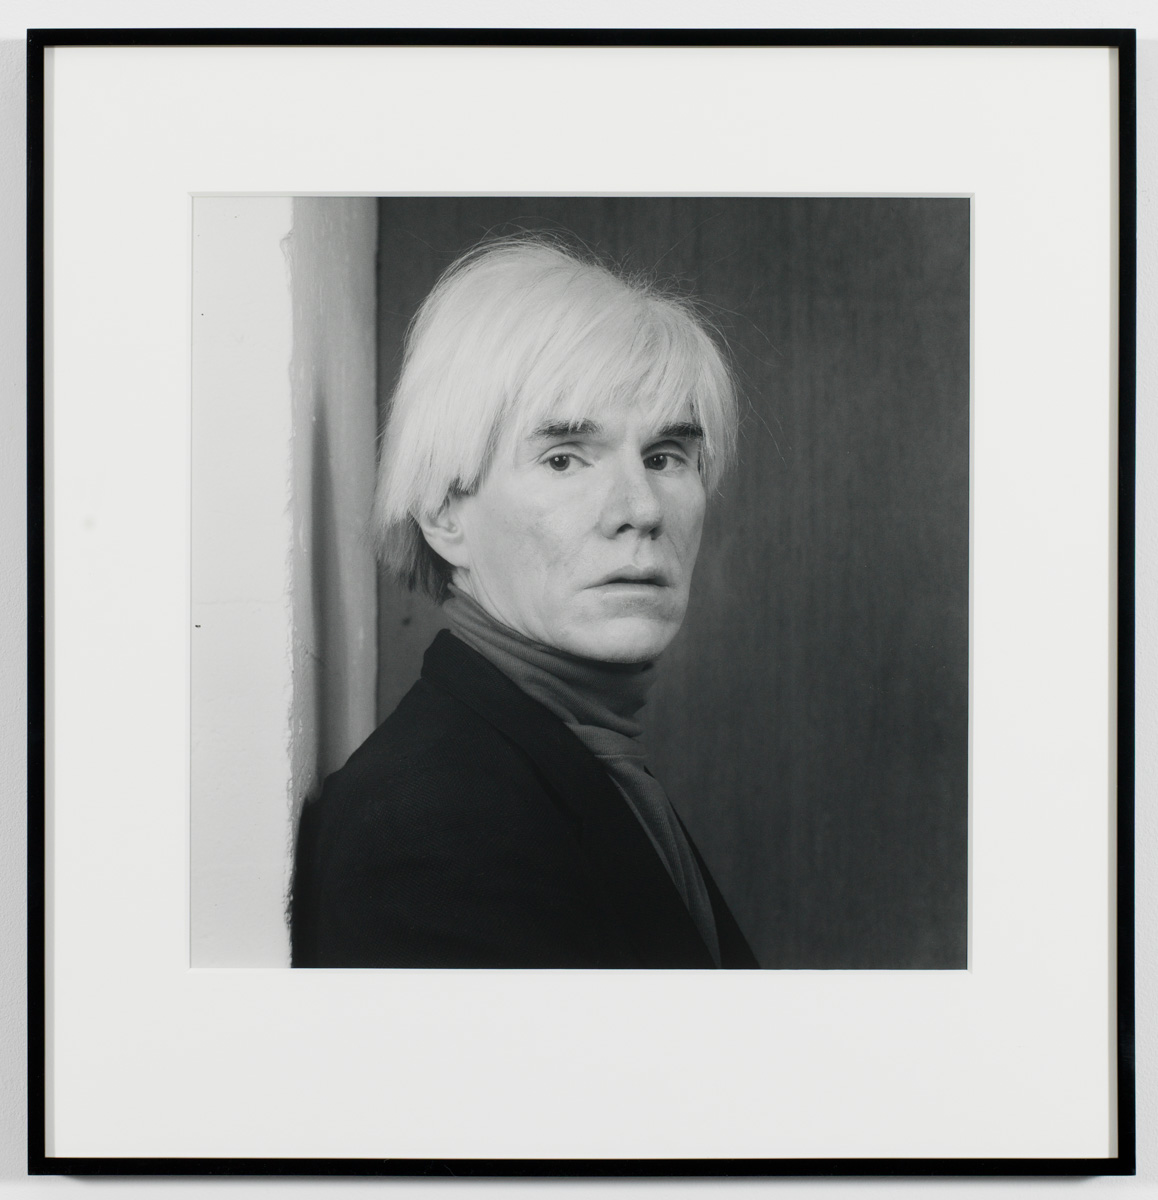 Robert Mapplethorpe, Andy Warhol